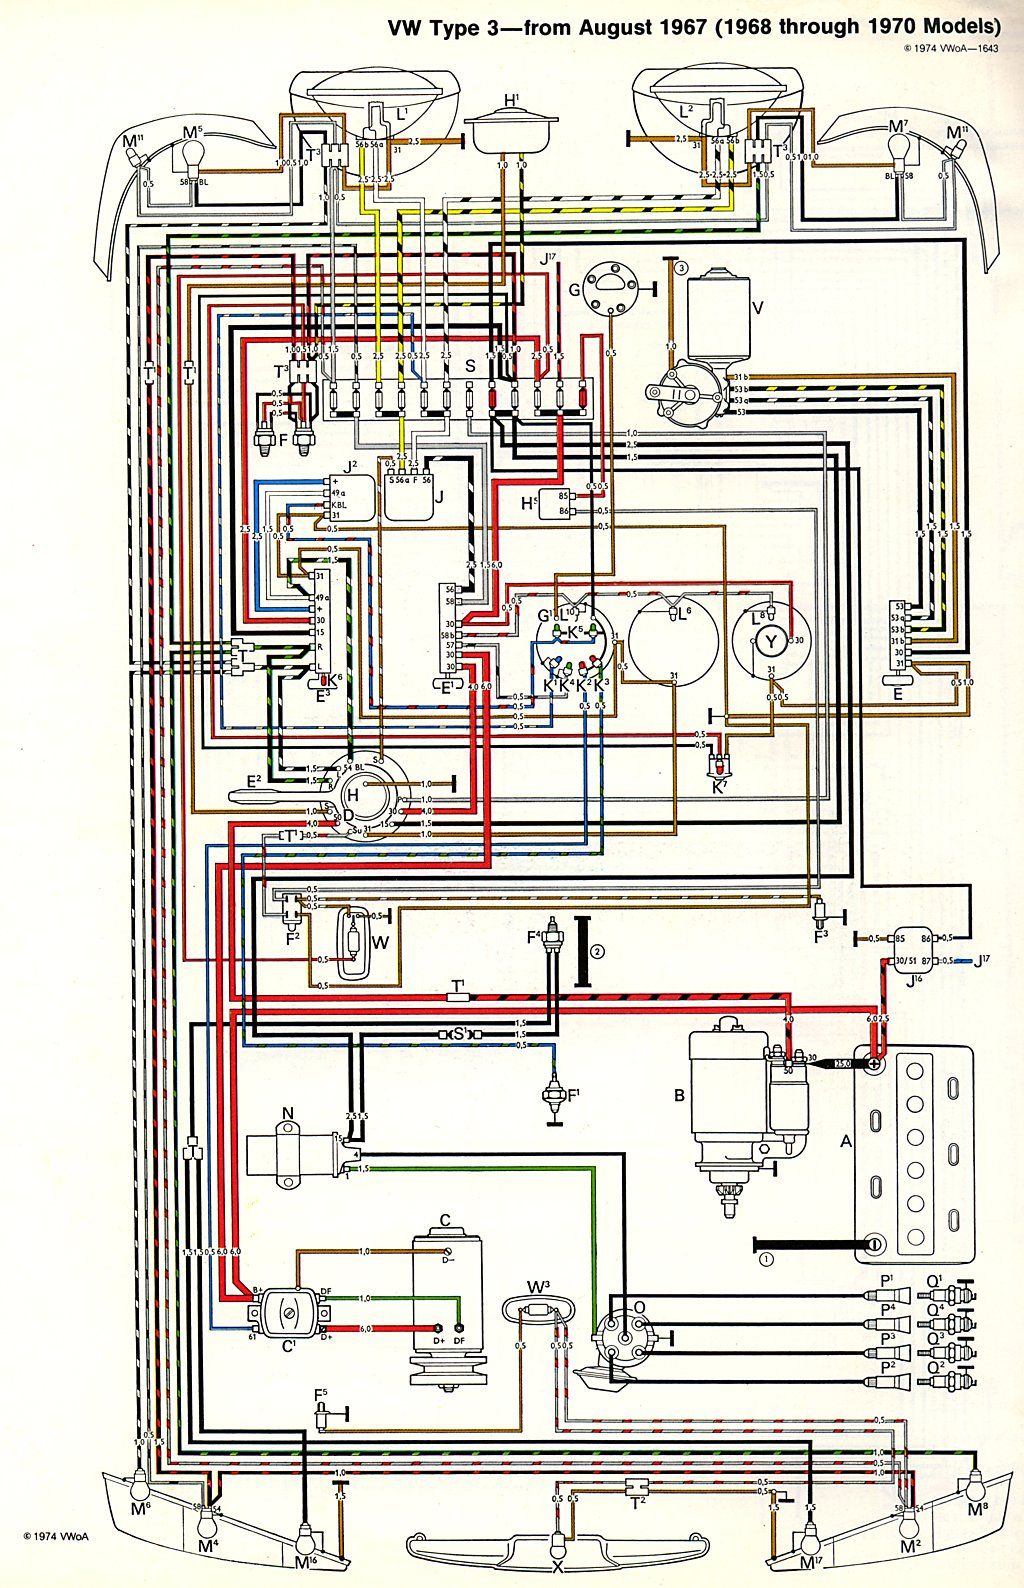 type3_6870 vw thing wiring diagram 1974 beetle heater diagram \u2022 wiring Wiring Harness Diagram at crackthecode.co